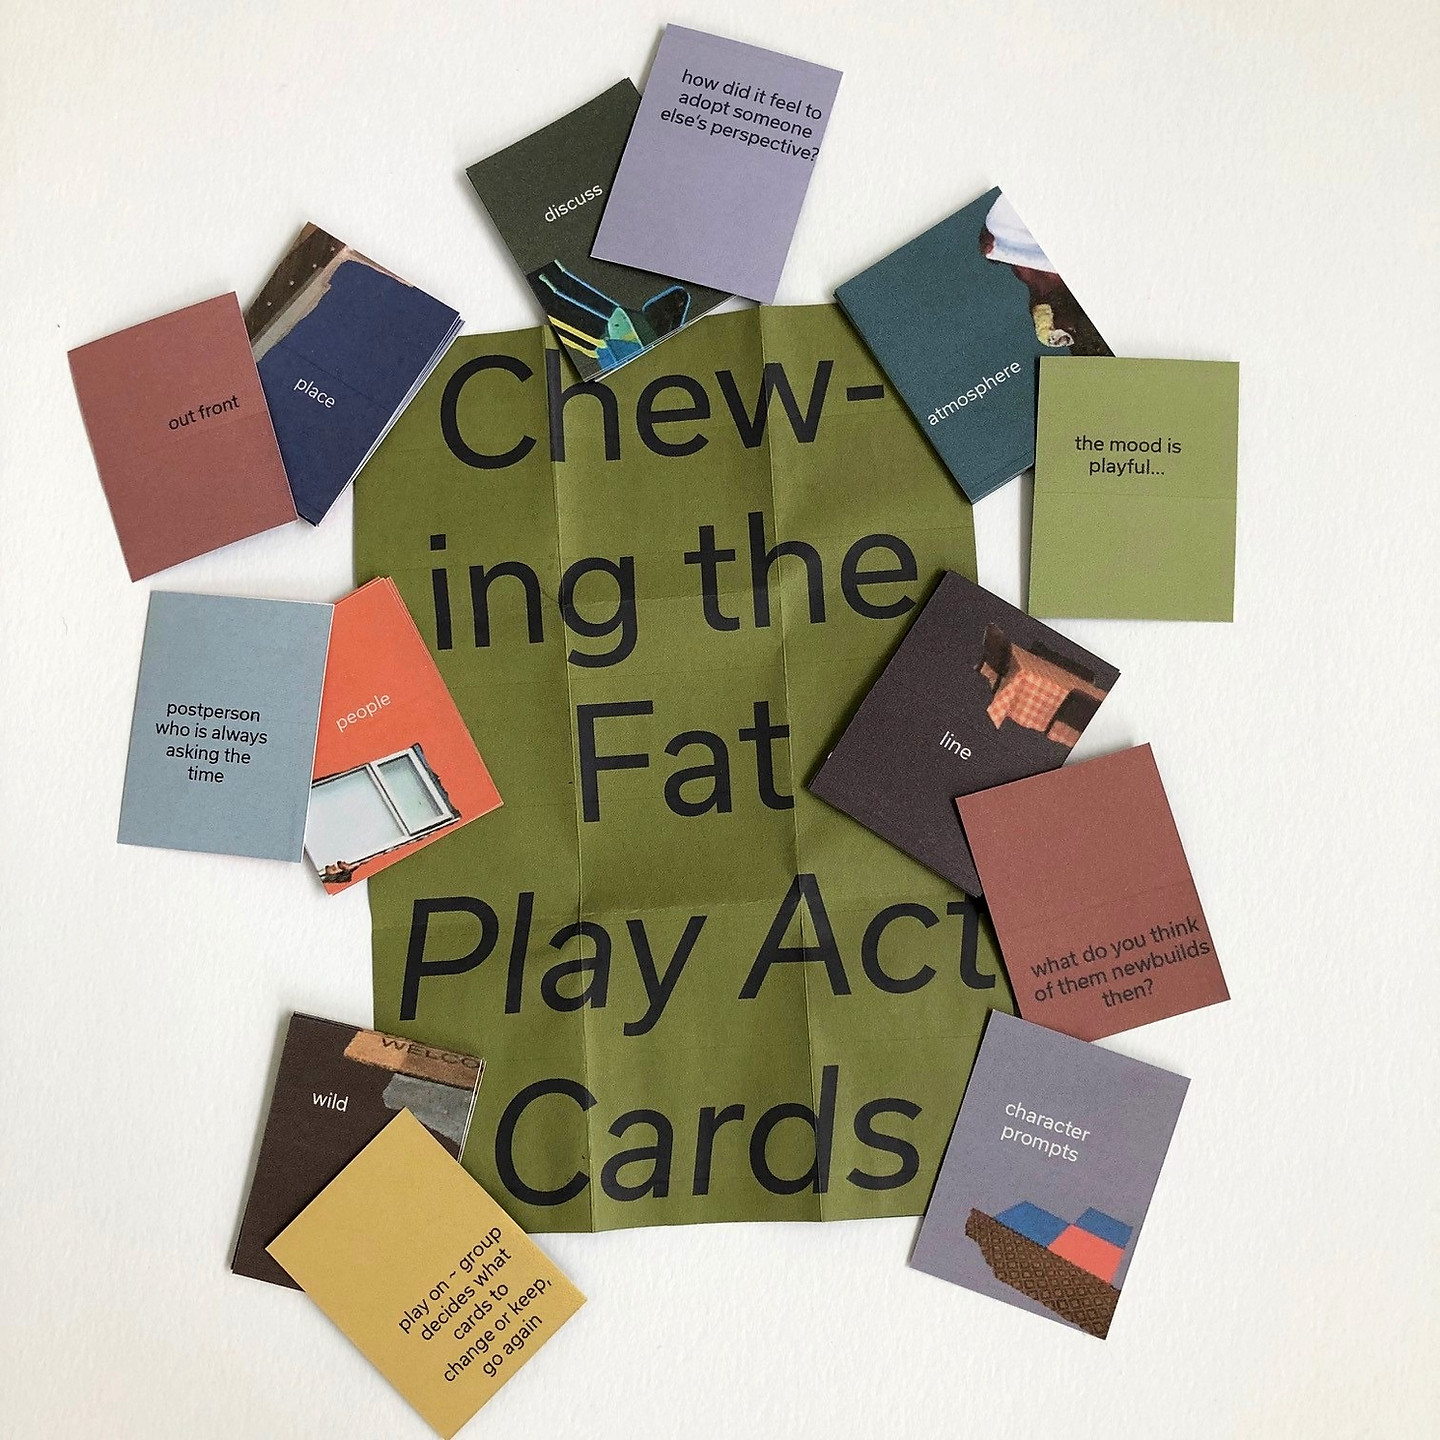 A set of colourful palm sized playing cards are scattered around a mushy pea green set of instructions tha read: Chewing the Fat, Play Act Cards in bold across a folded out set of instructions. The colour scheme is bright but muddy and the cards have words such as 'people' 'place' and 'line' on them as well as descriptions relevant to these such as 'postpersn who is always asking the time' and ' what do you think of the newbuilds?'. They also have digitally collaged images on the such as a cafe table, or a house window or toys usually found in 'everyday' urban life.